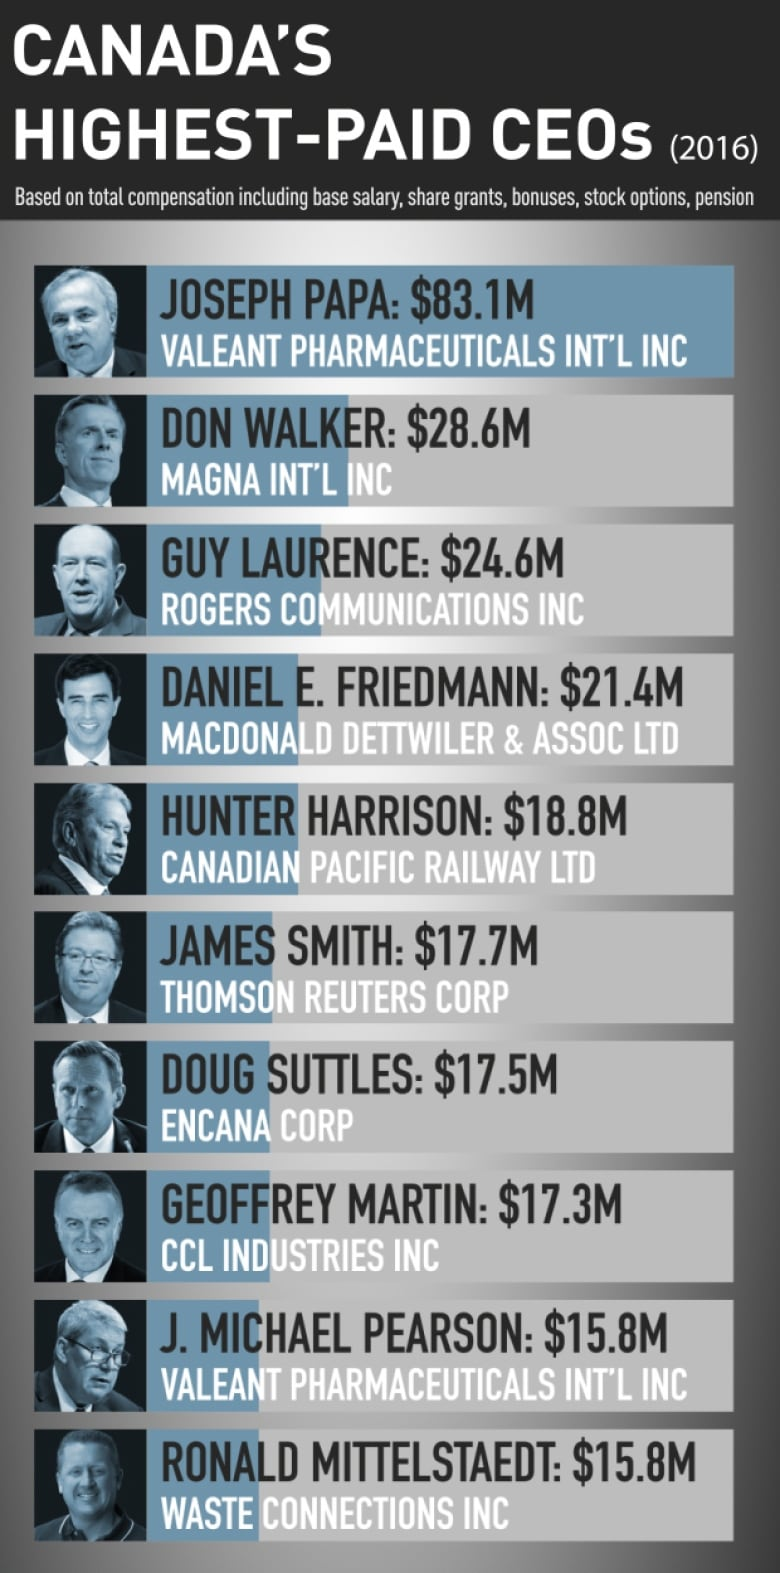 Canada's top CEOs earn 200 times an average worker's salary: report